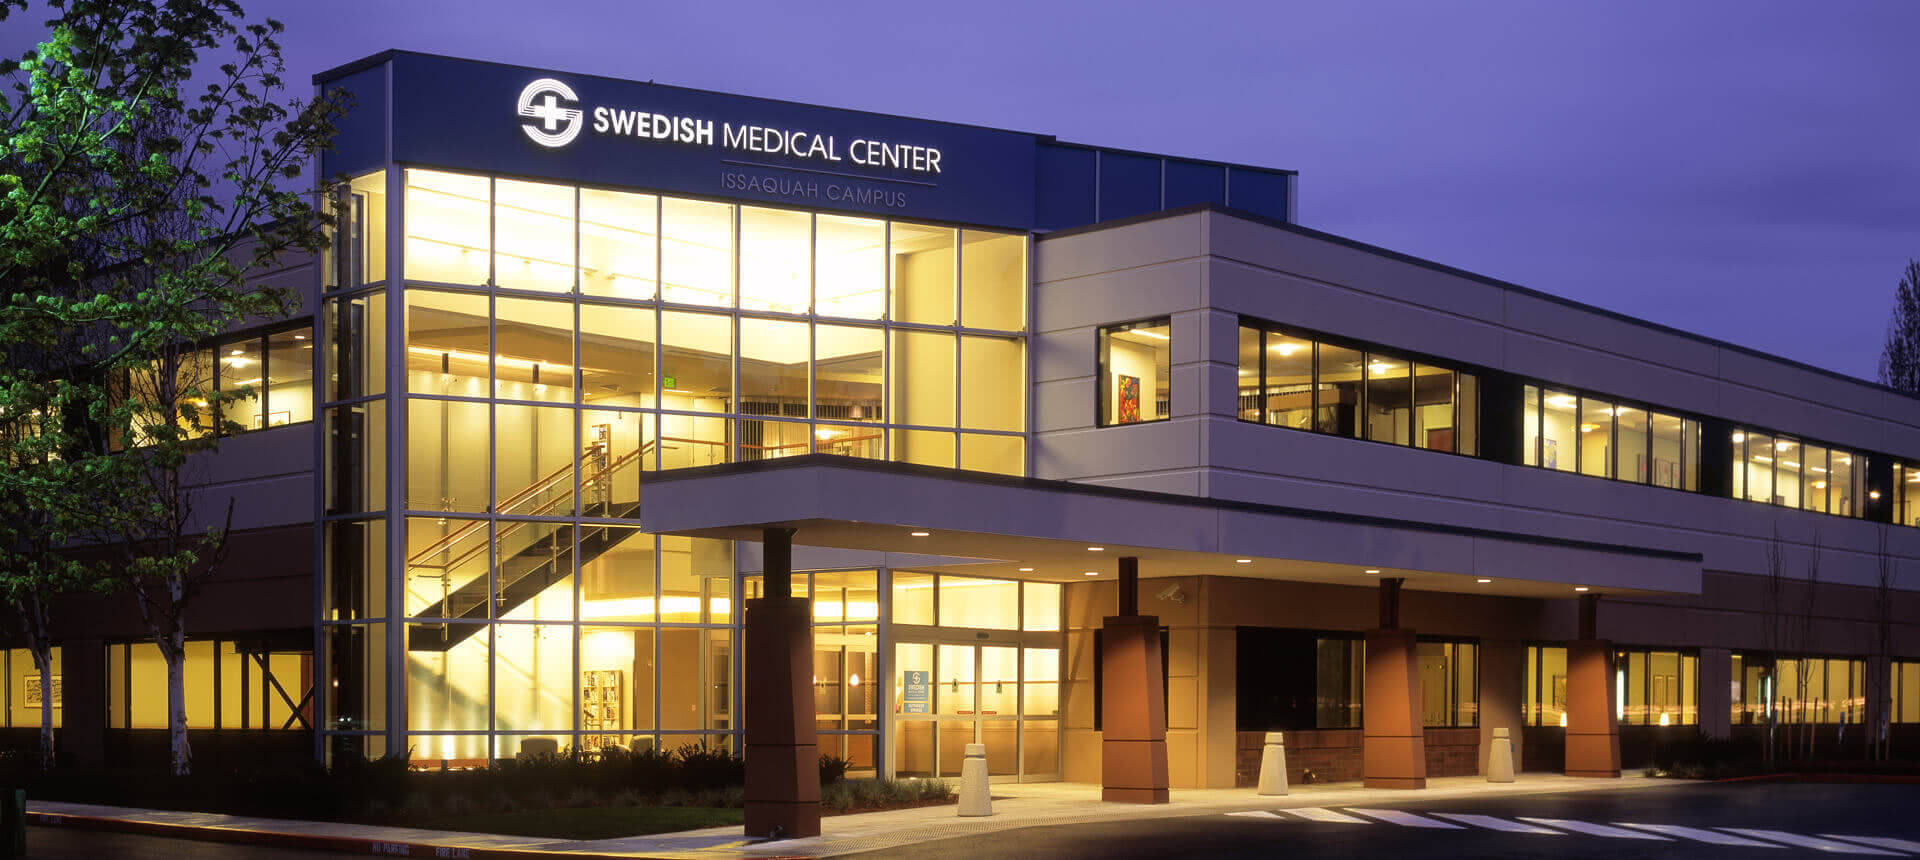 Swedish Emergency Room Issaquah